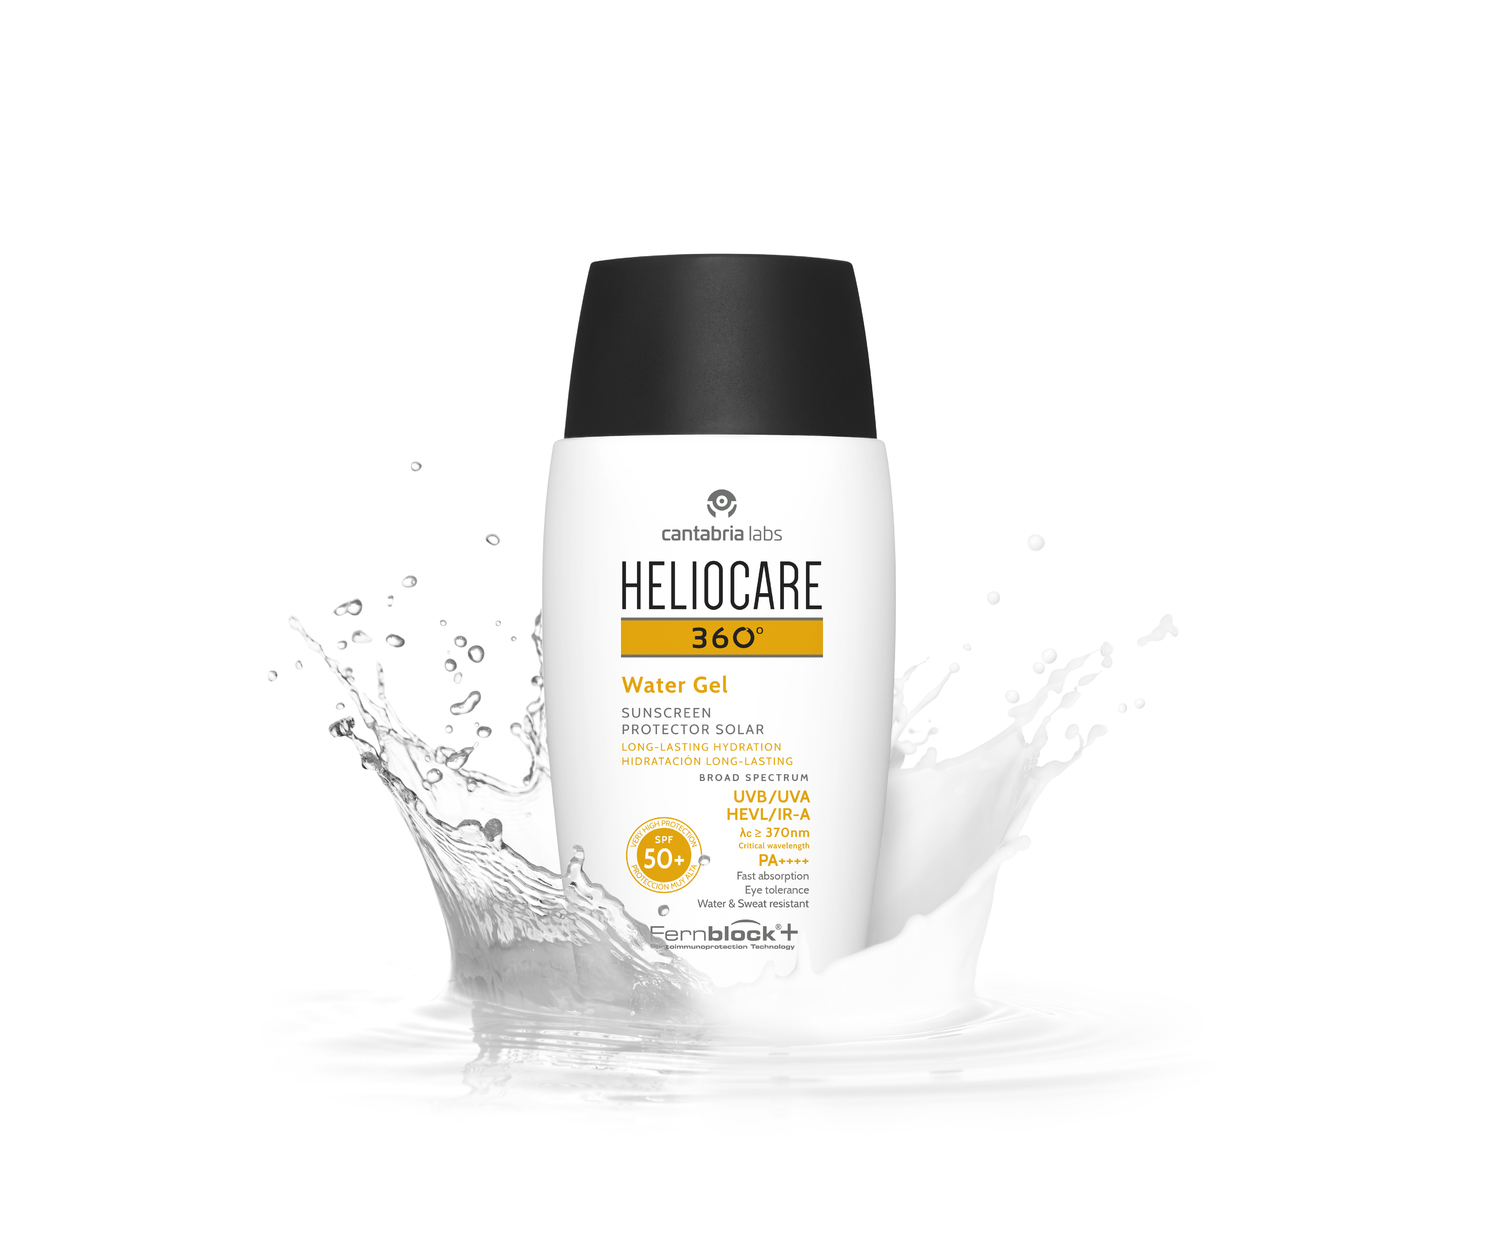 Heliocare 360° Water Gel SPF 50+.